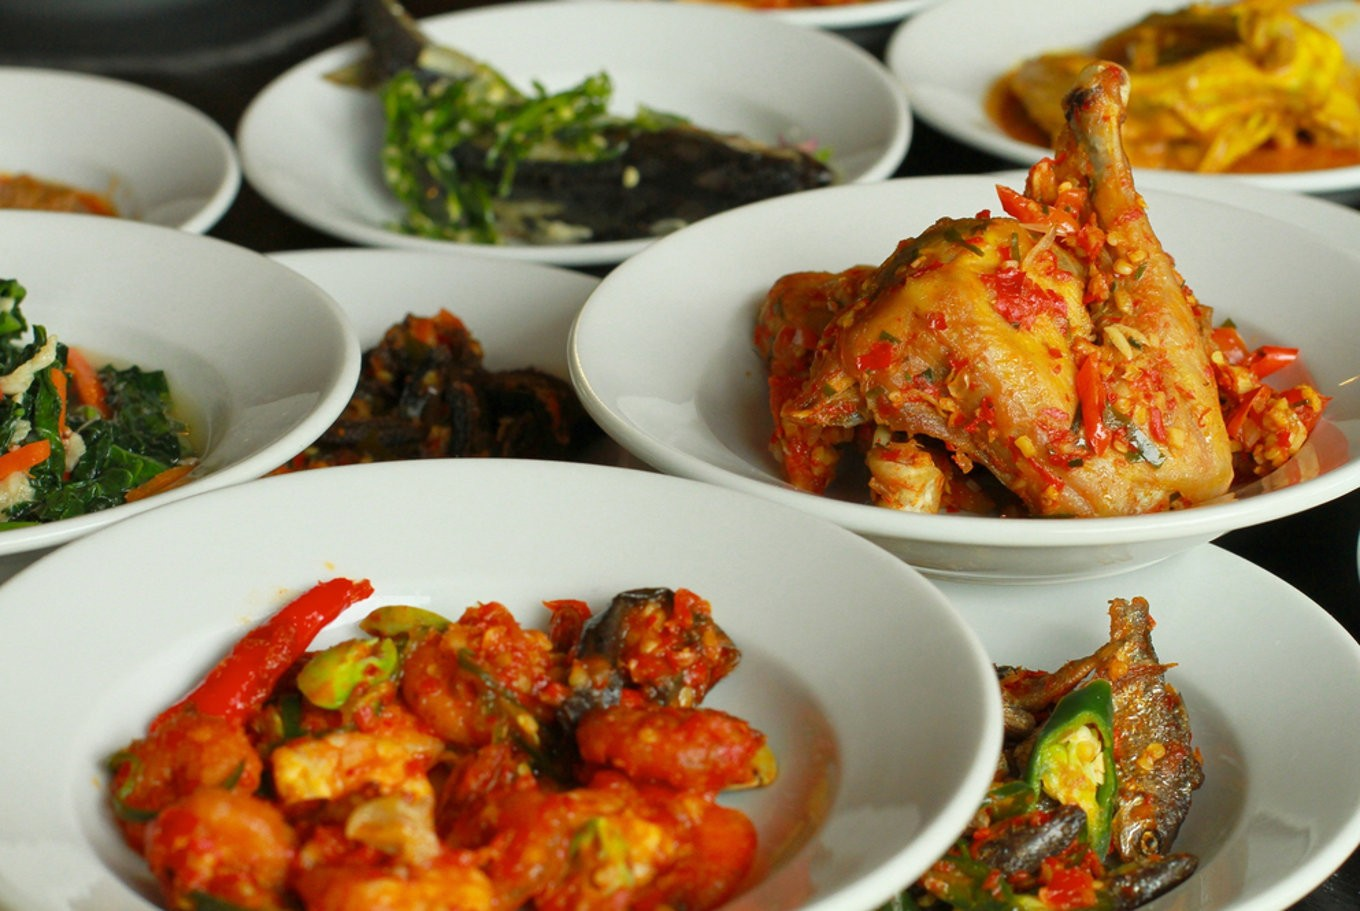 Fun facts about your delicious Padang food